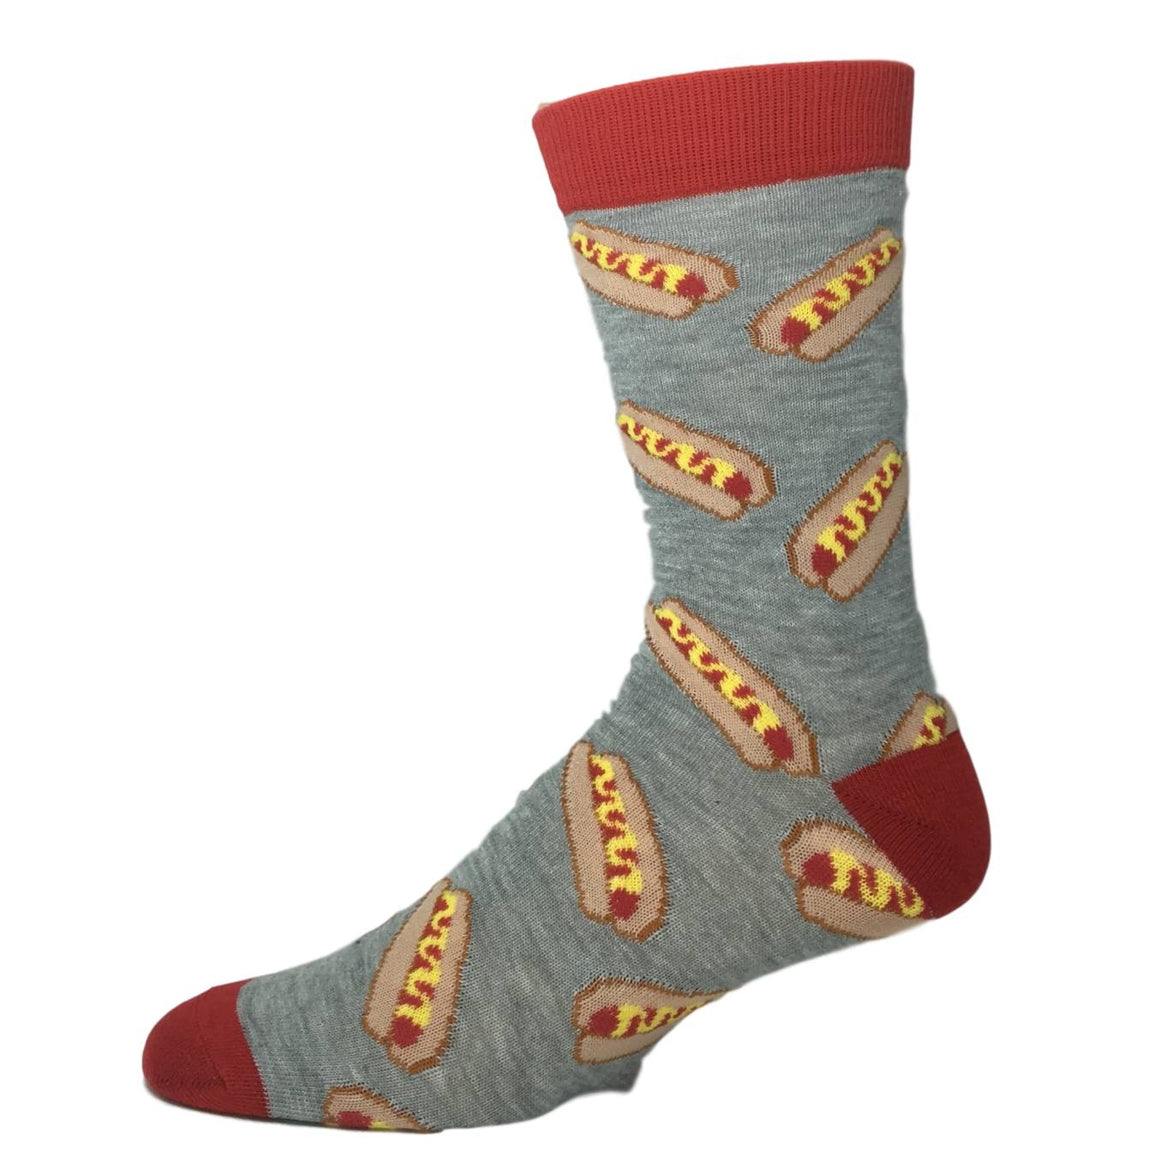 Socks - Hot Dog And Mustard Socks